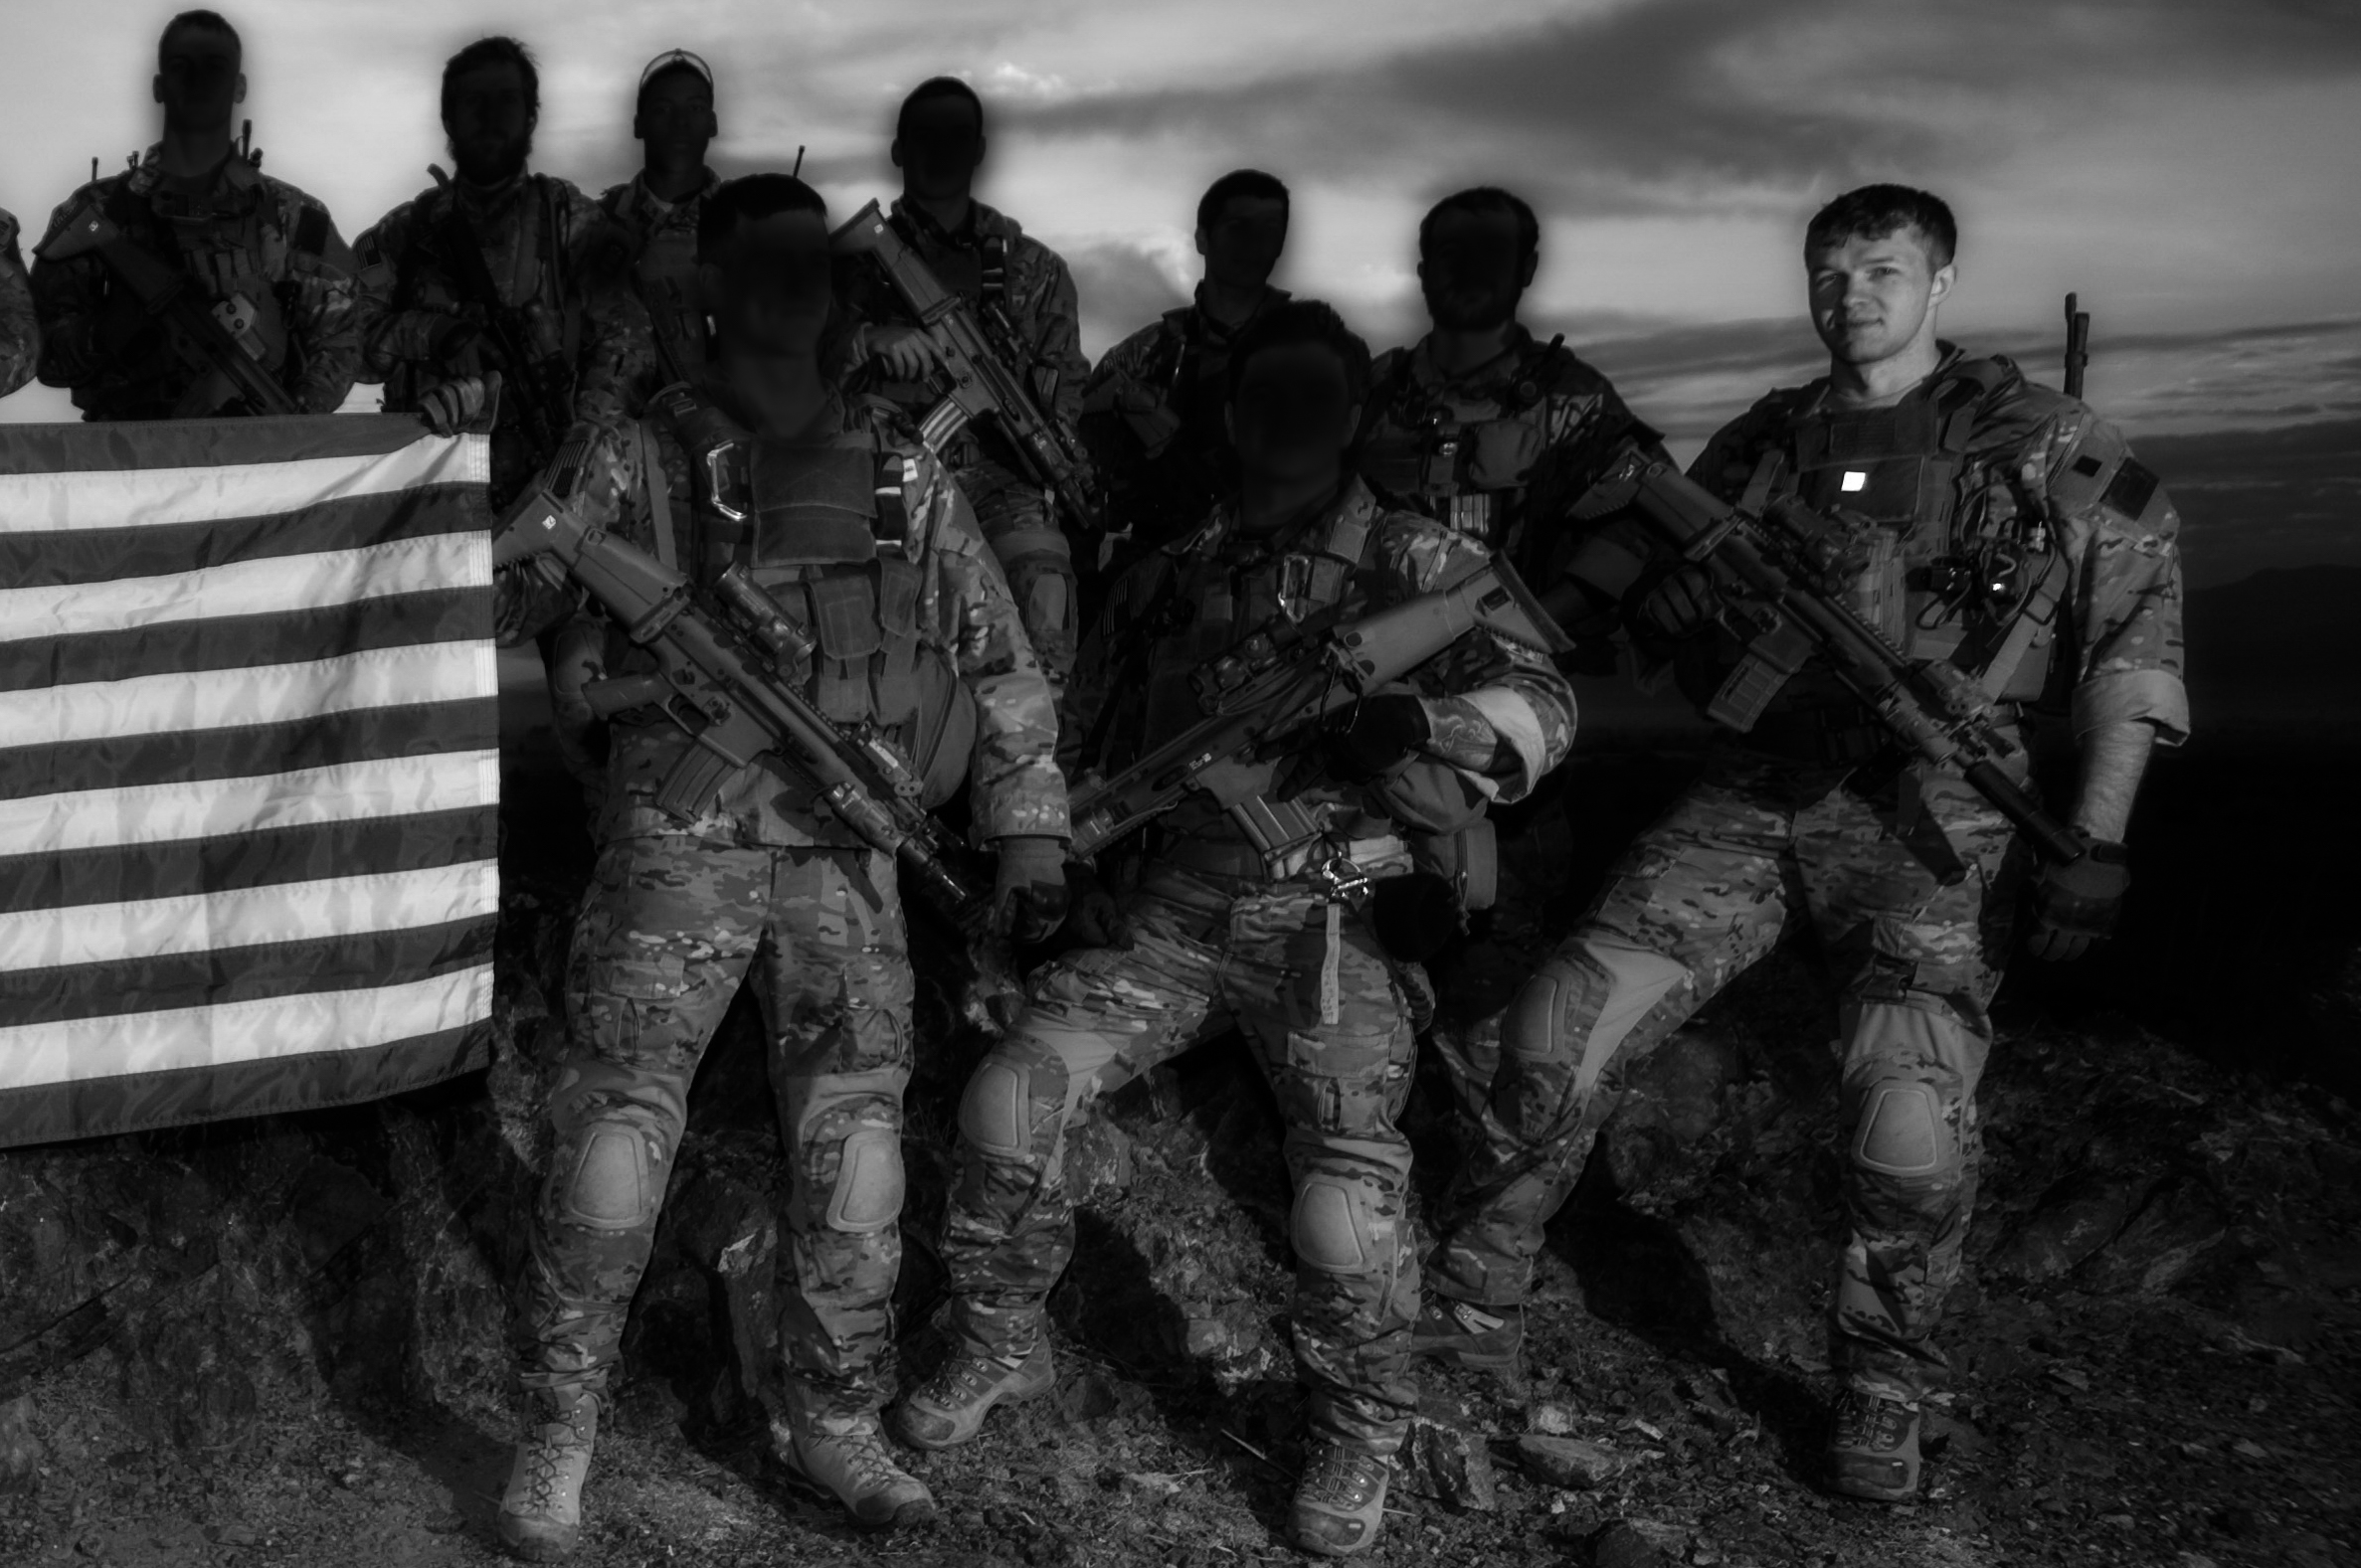 Me with a few guys from our platoon on my last trip to Afghanistan as a soldier in 2009.